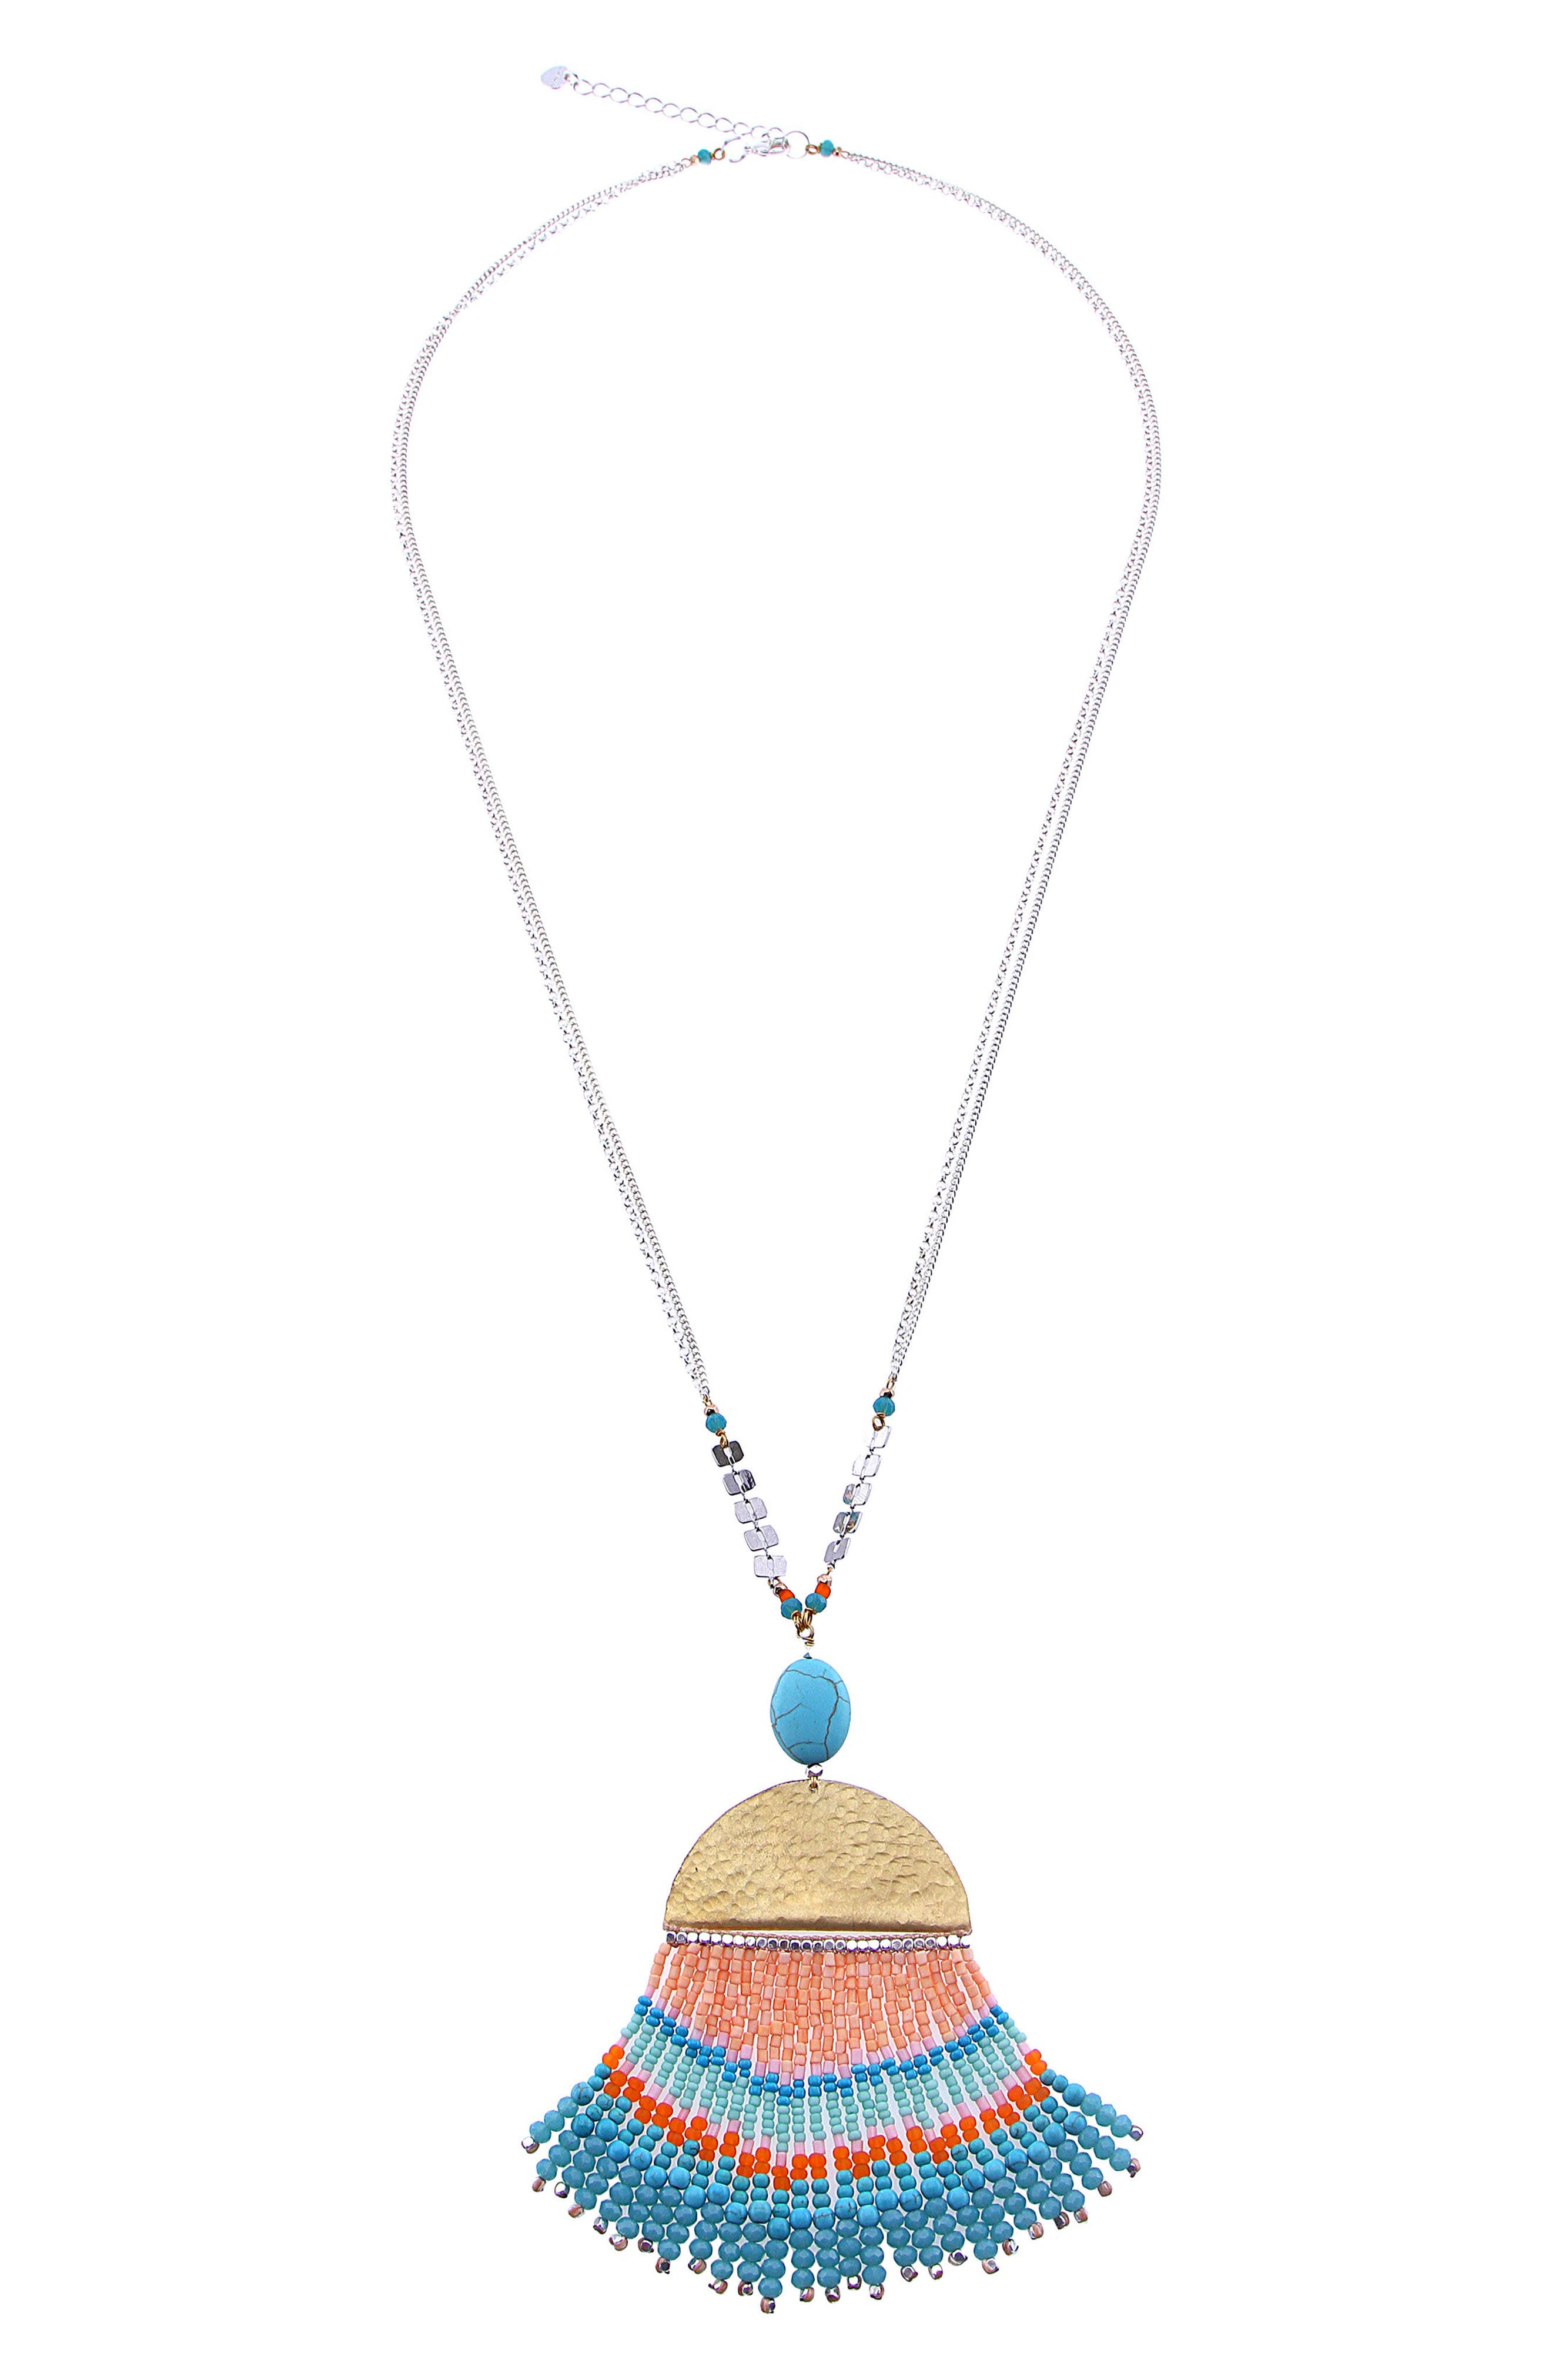 Seed Bead Fringe Pendant Necklace,                             Main thumbnail 1, color,                             Turquoise